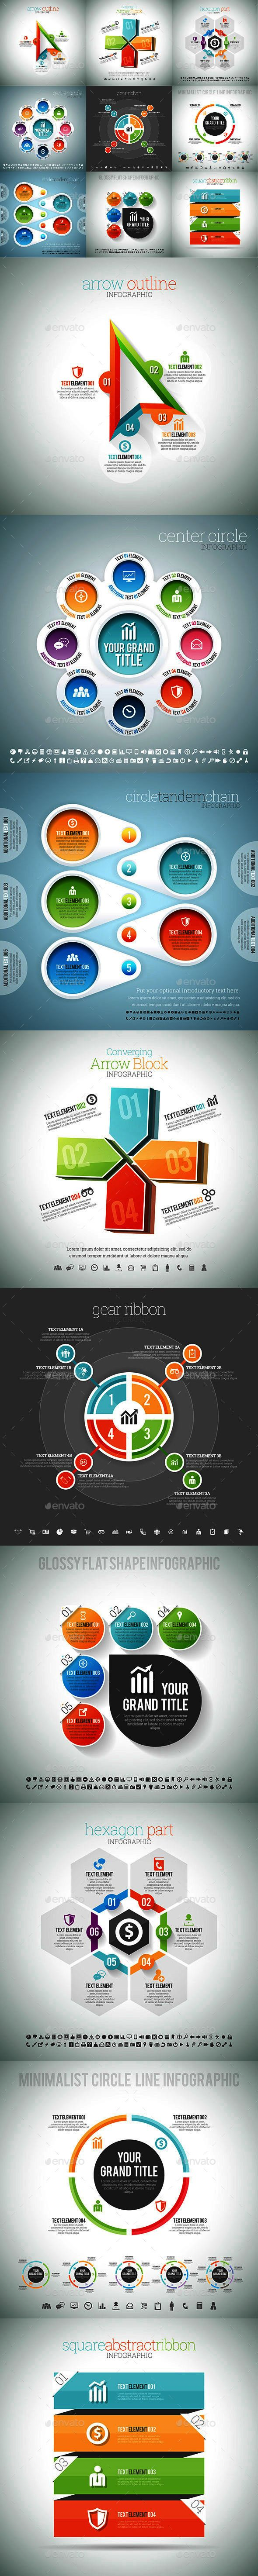 Infographic Set Template Vector EPS #design Download: http://graphicriver.net/item/infographic-set-12/12999552?ref=ksioks